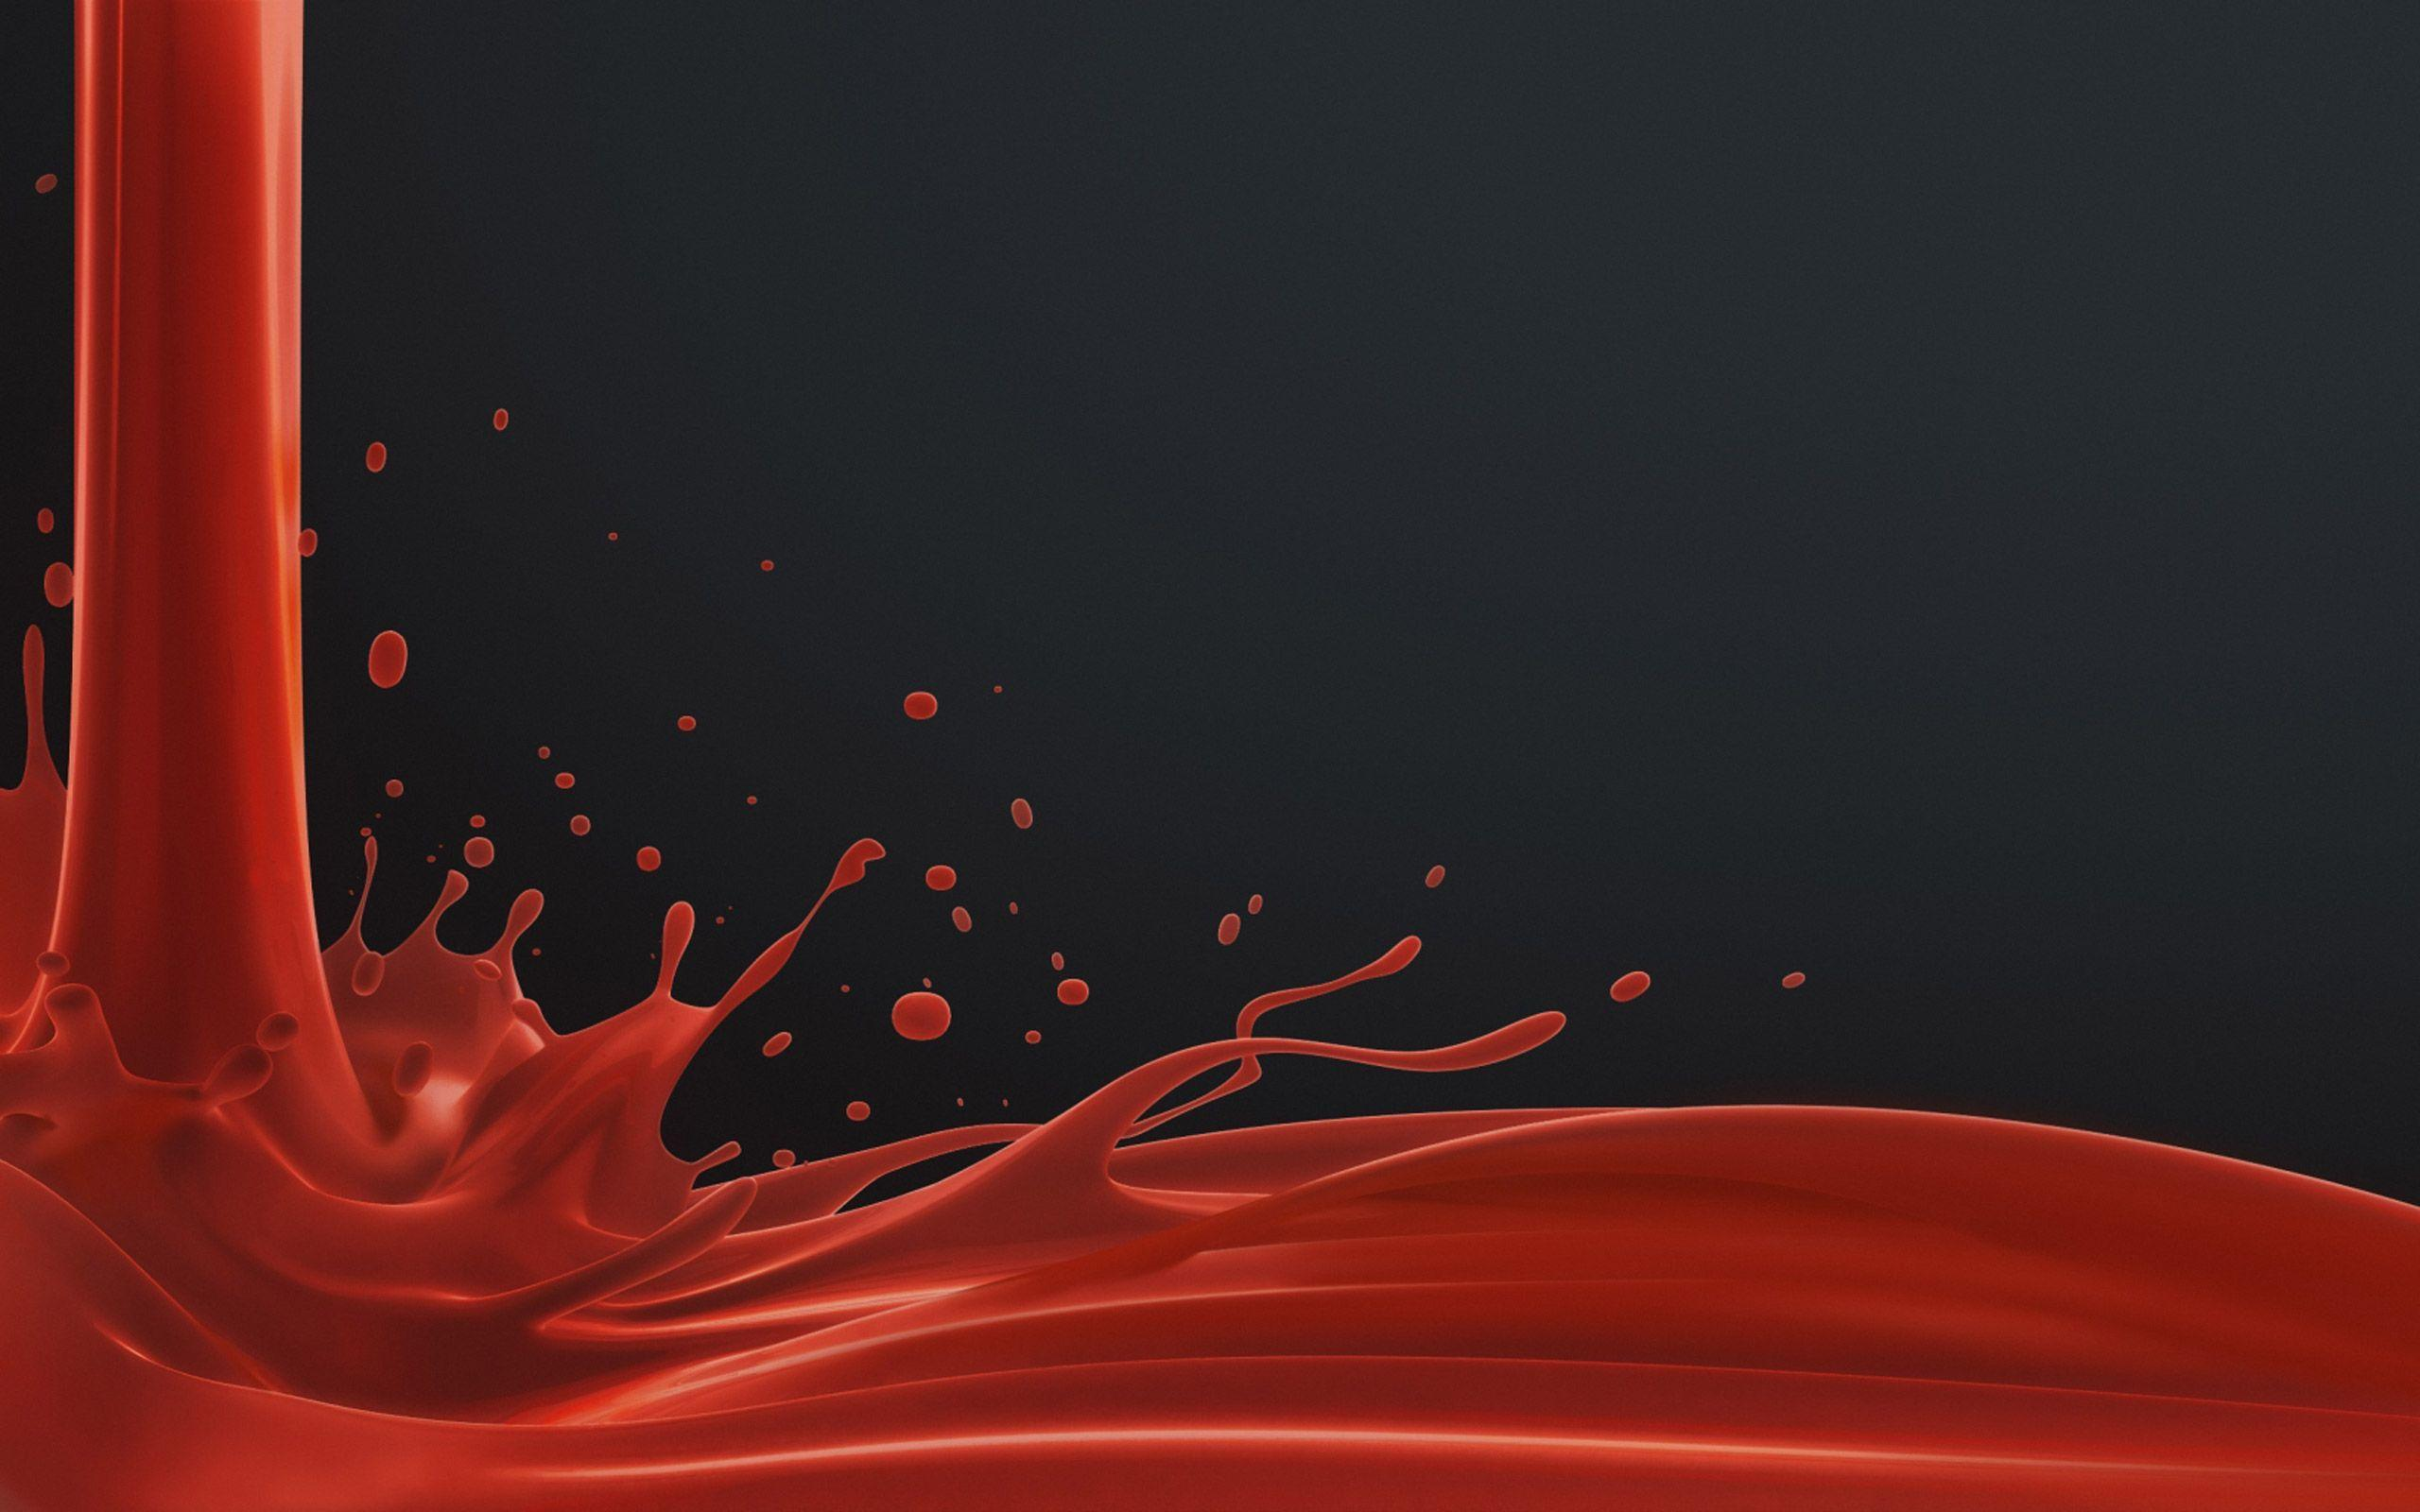 Tomato juice wallpapers and image